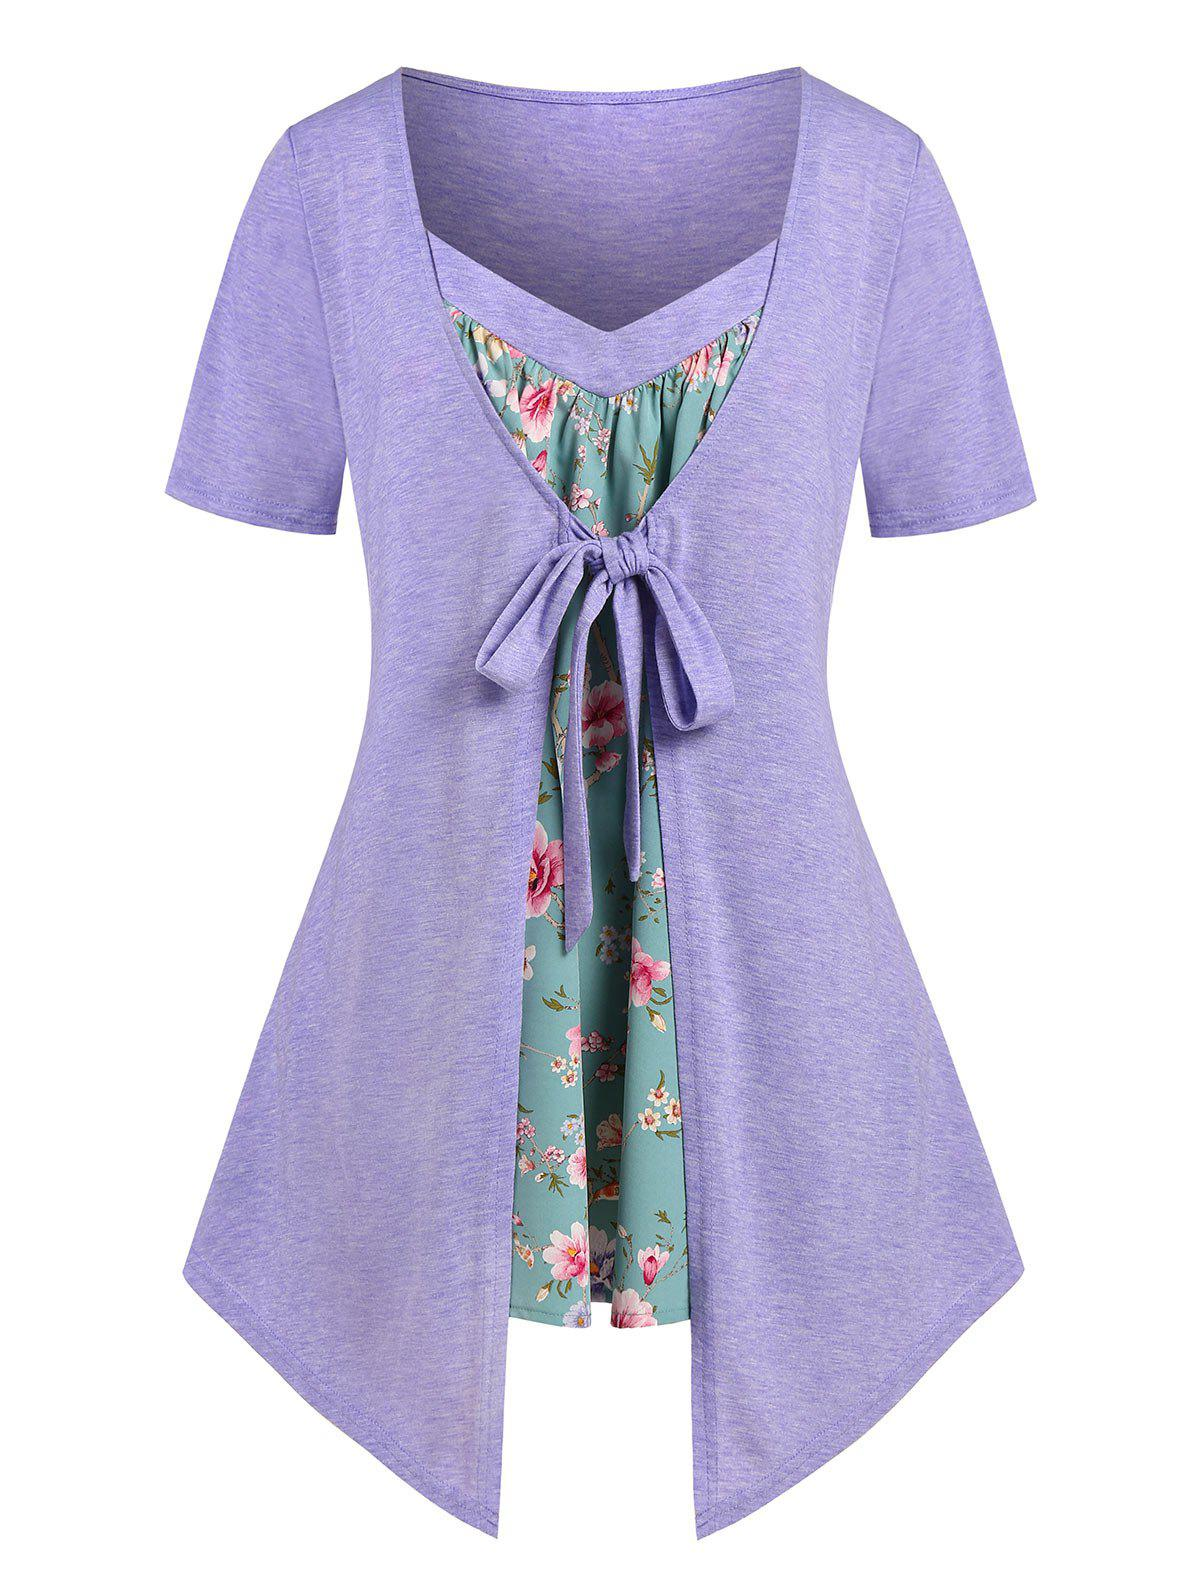 Fashion Plus Size Floral Print Front Tie 2 in 1 Tee